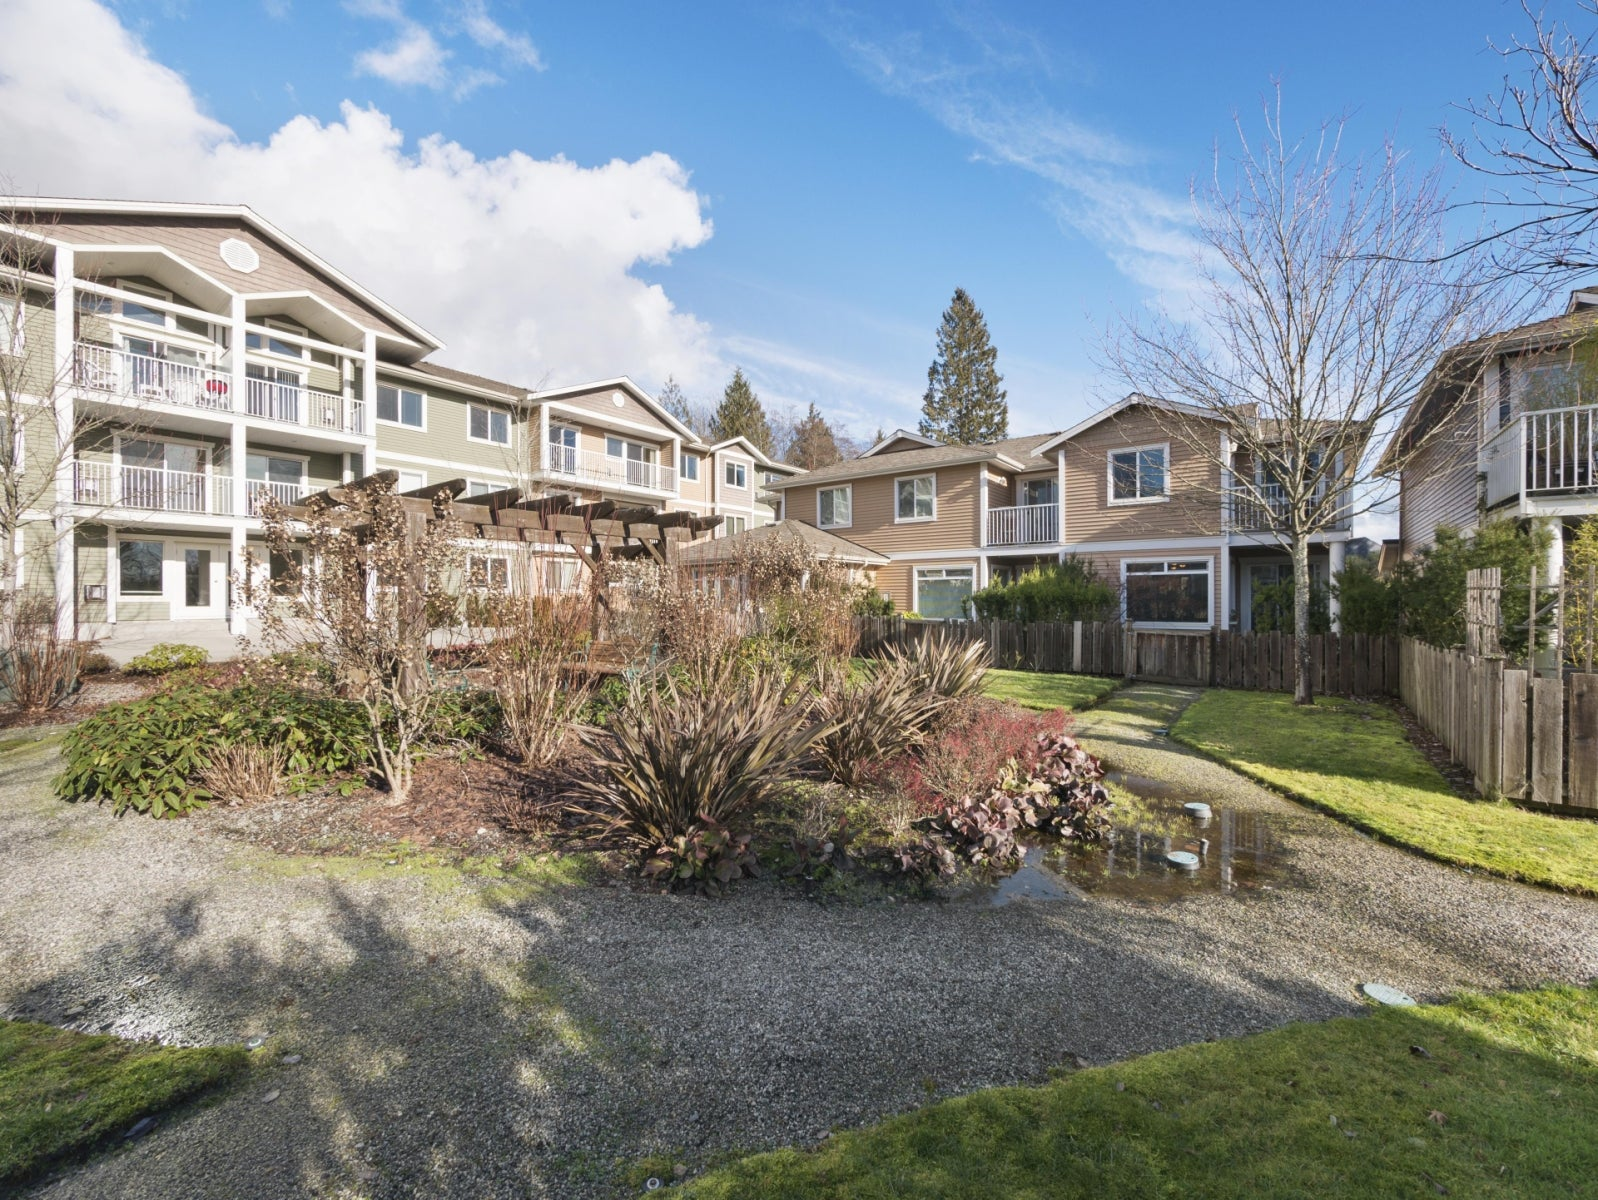 11 624 SHAW ROAD - Gibsons & Area Townhouse for sale, 3 Bedrooms (R2234910) #6